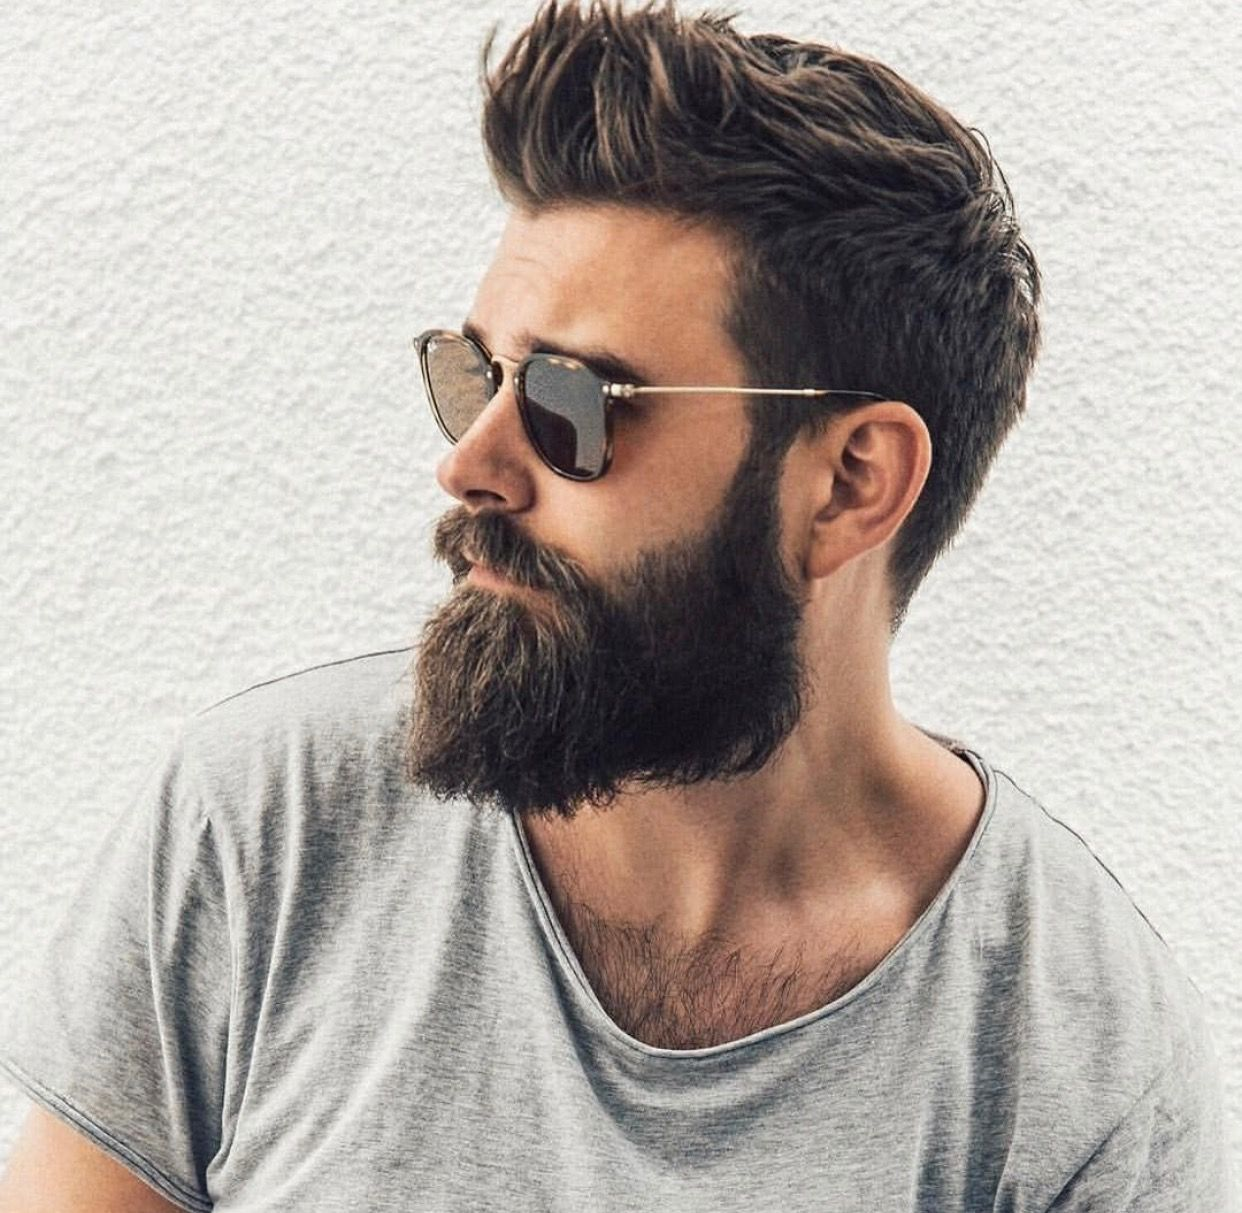 Trendy men haircuts pin by az on beard style  pinterest  haircuts man hair and beard